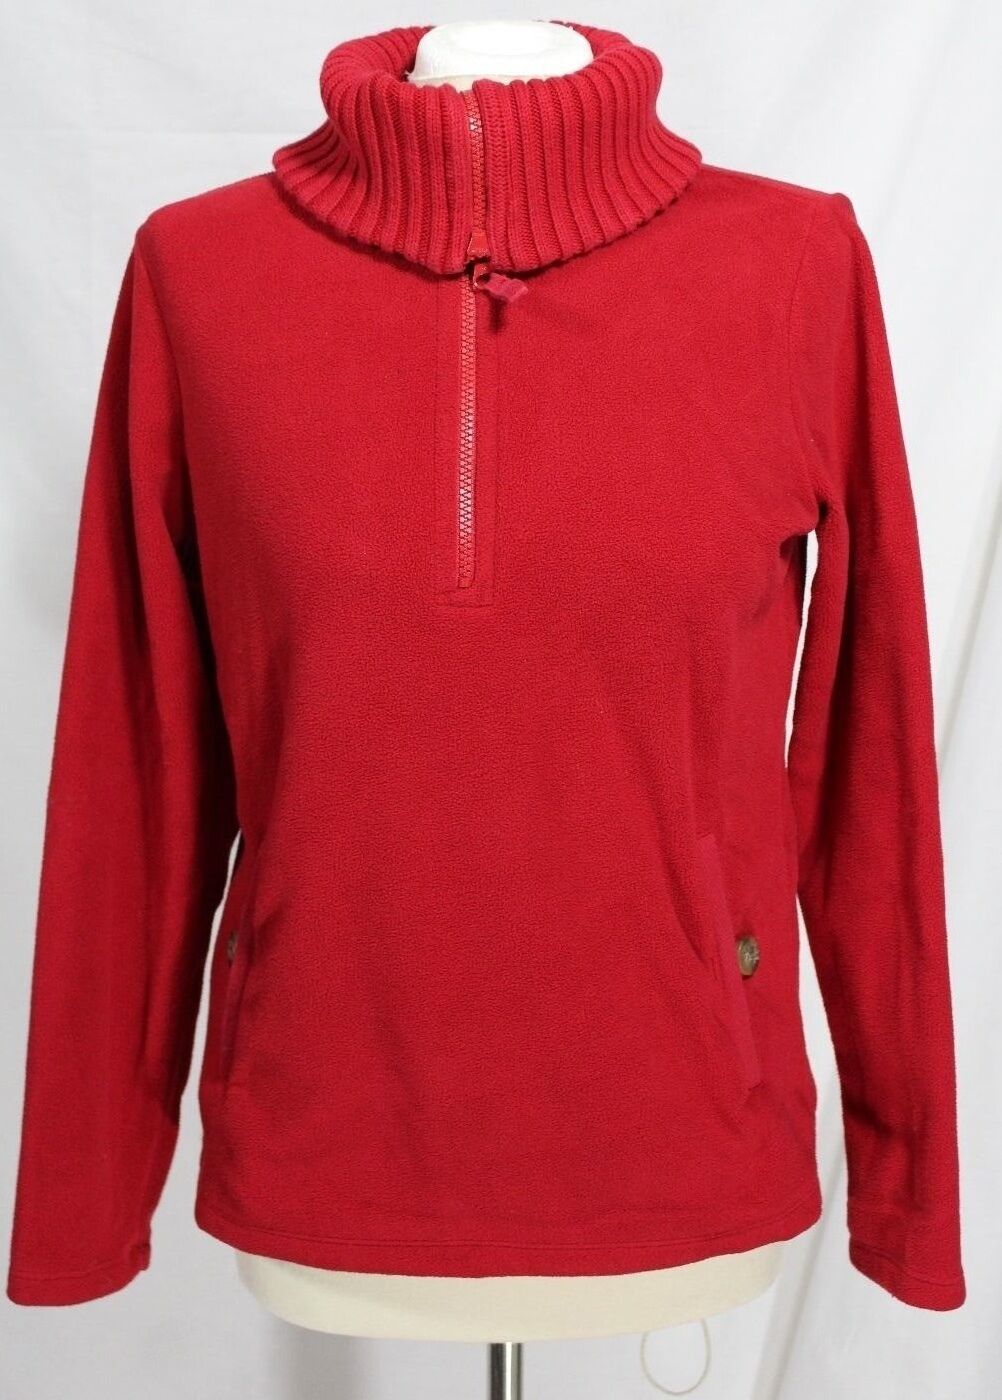 Lands End - Donna XS 2/4 - Solid rosso Knit Collar Soft Pull-Over Fleece Sweater